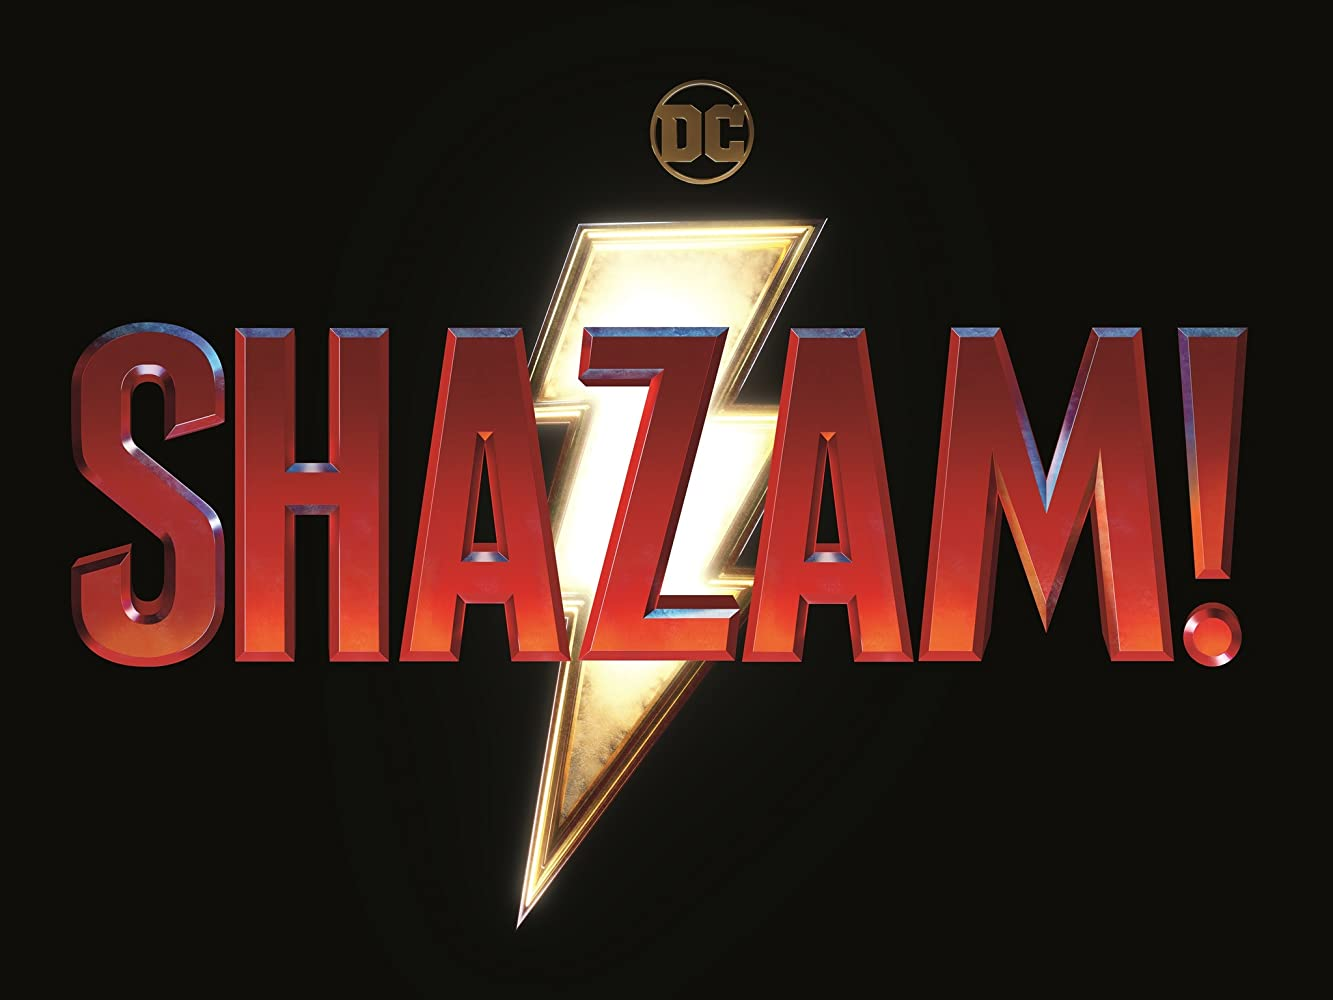 Shazam! / DC Comics & Warner Bros. Pictures. © 2019. All rights reserved.